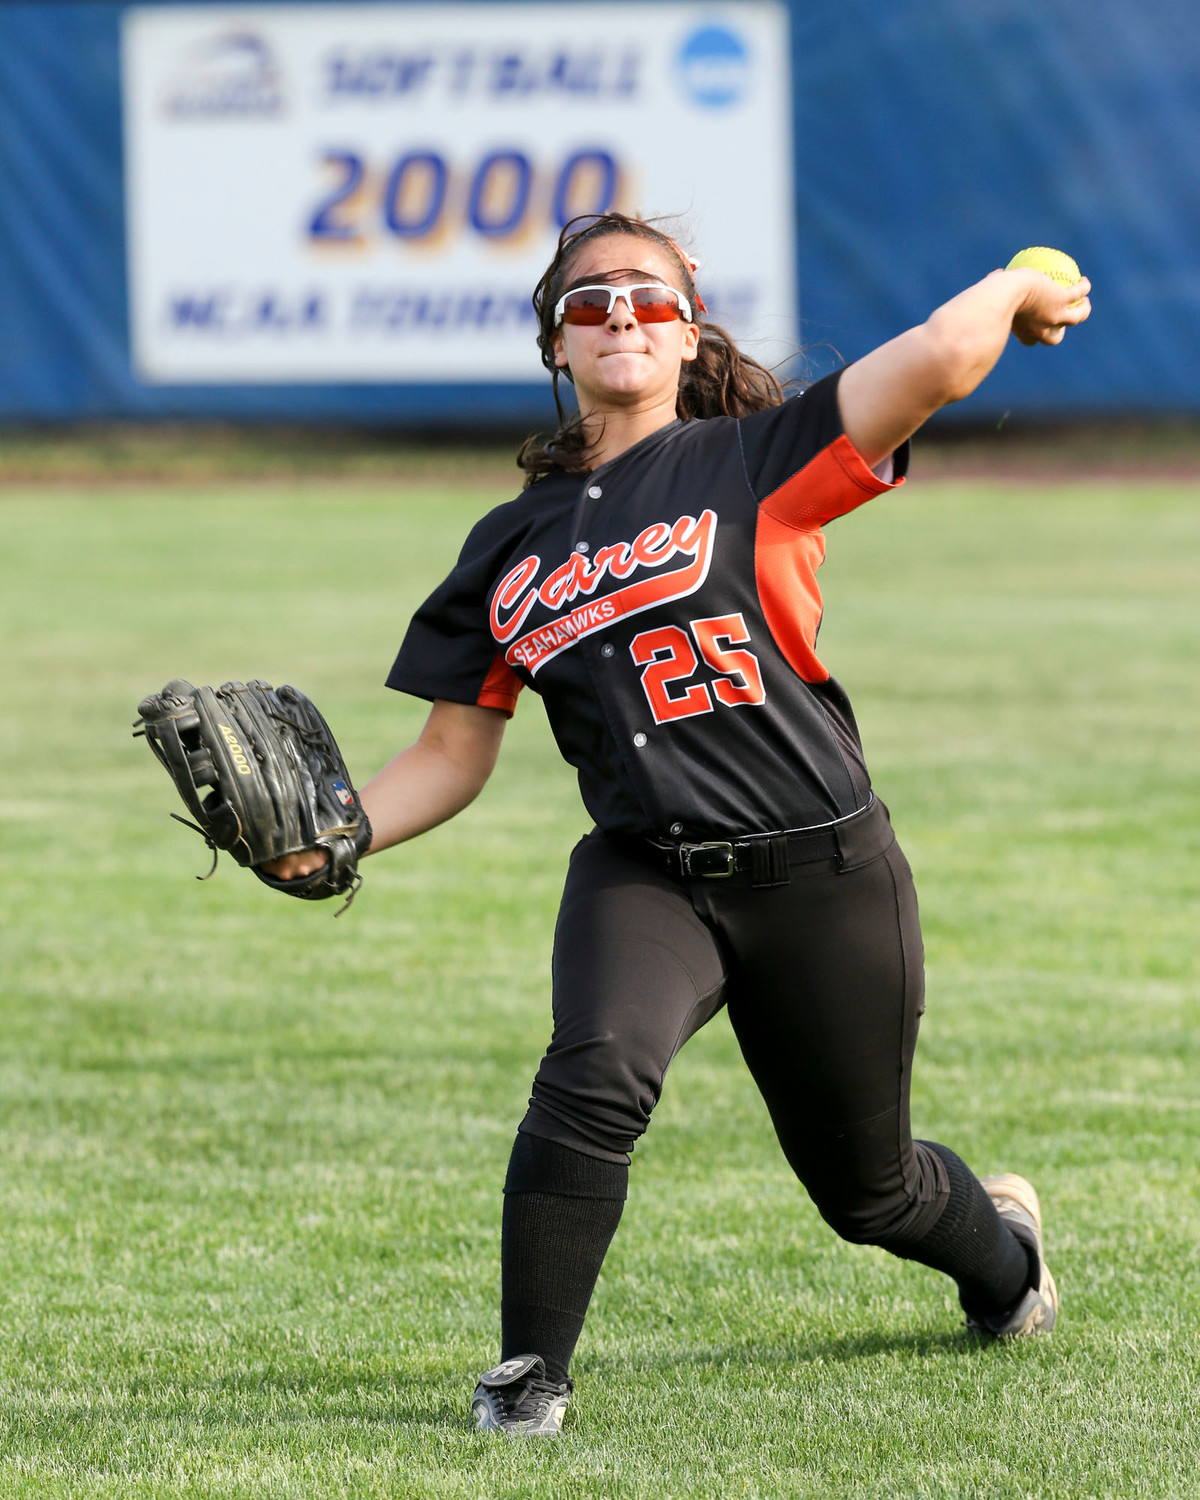 Vilchez homered to set the tone for the Lady Seahawks' 6-0 shutout over rival Clarke High School in the 2016 Nassau County Class A championship series.